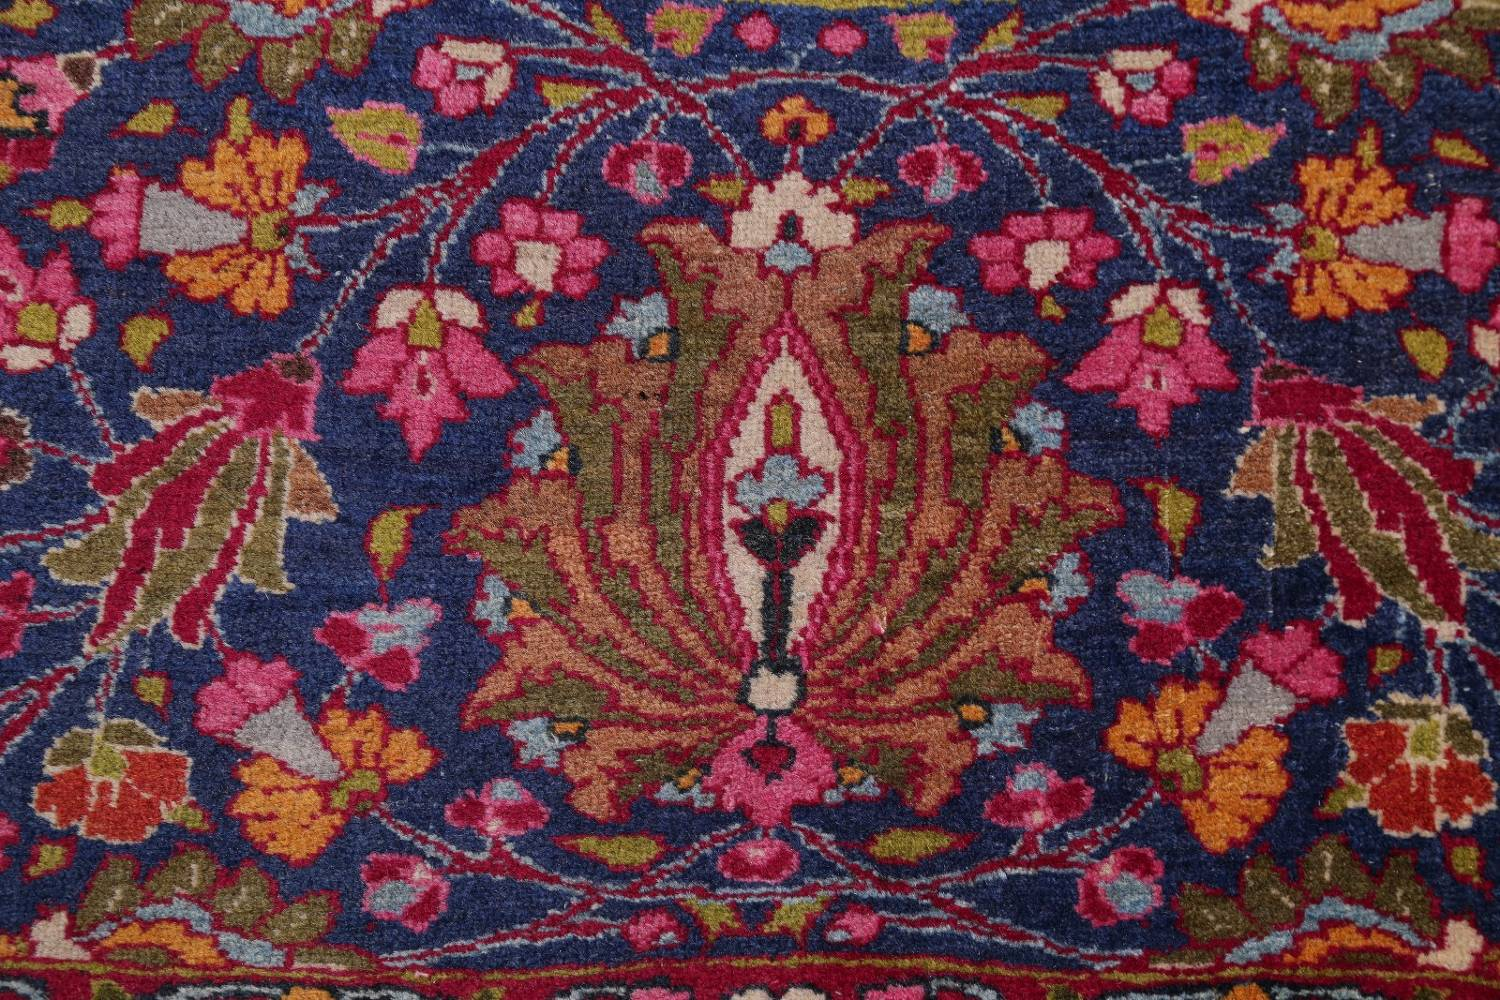 All-Over Floral 11x16 Mashad Persian Area Rug image 9